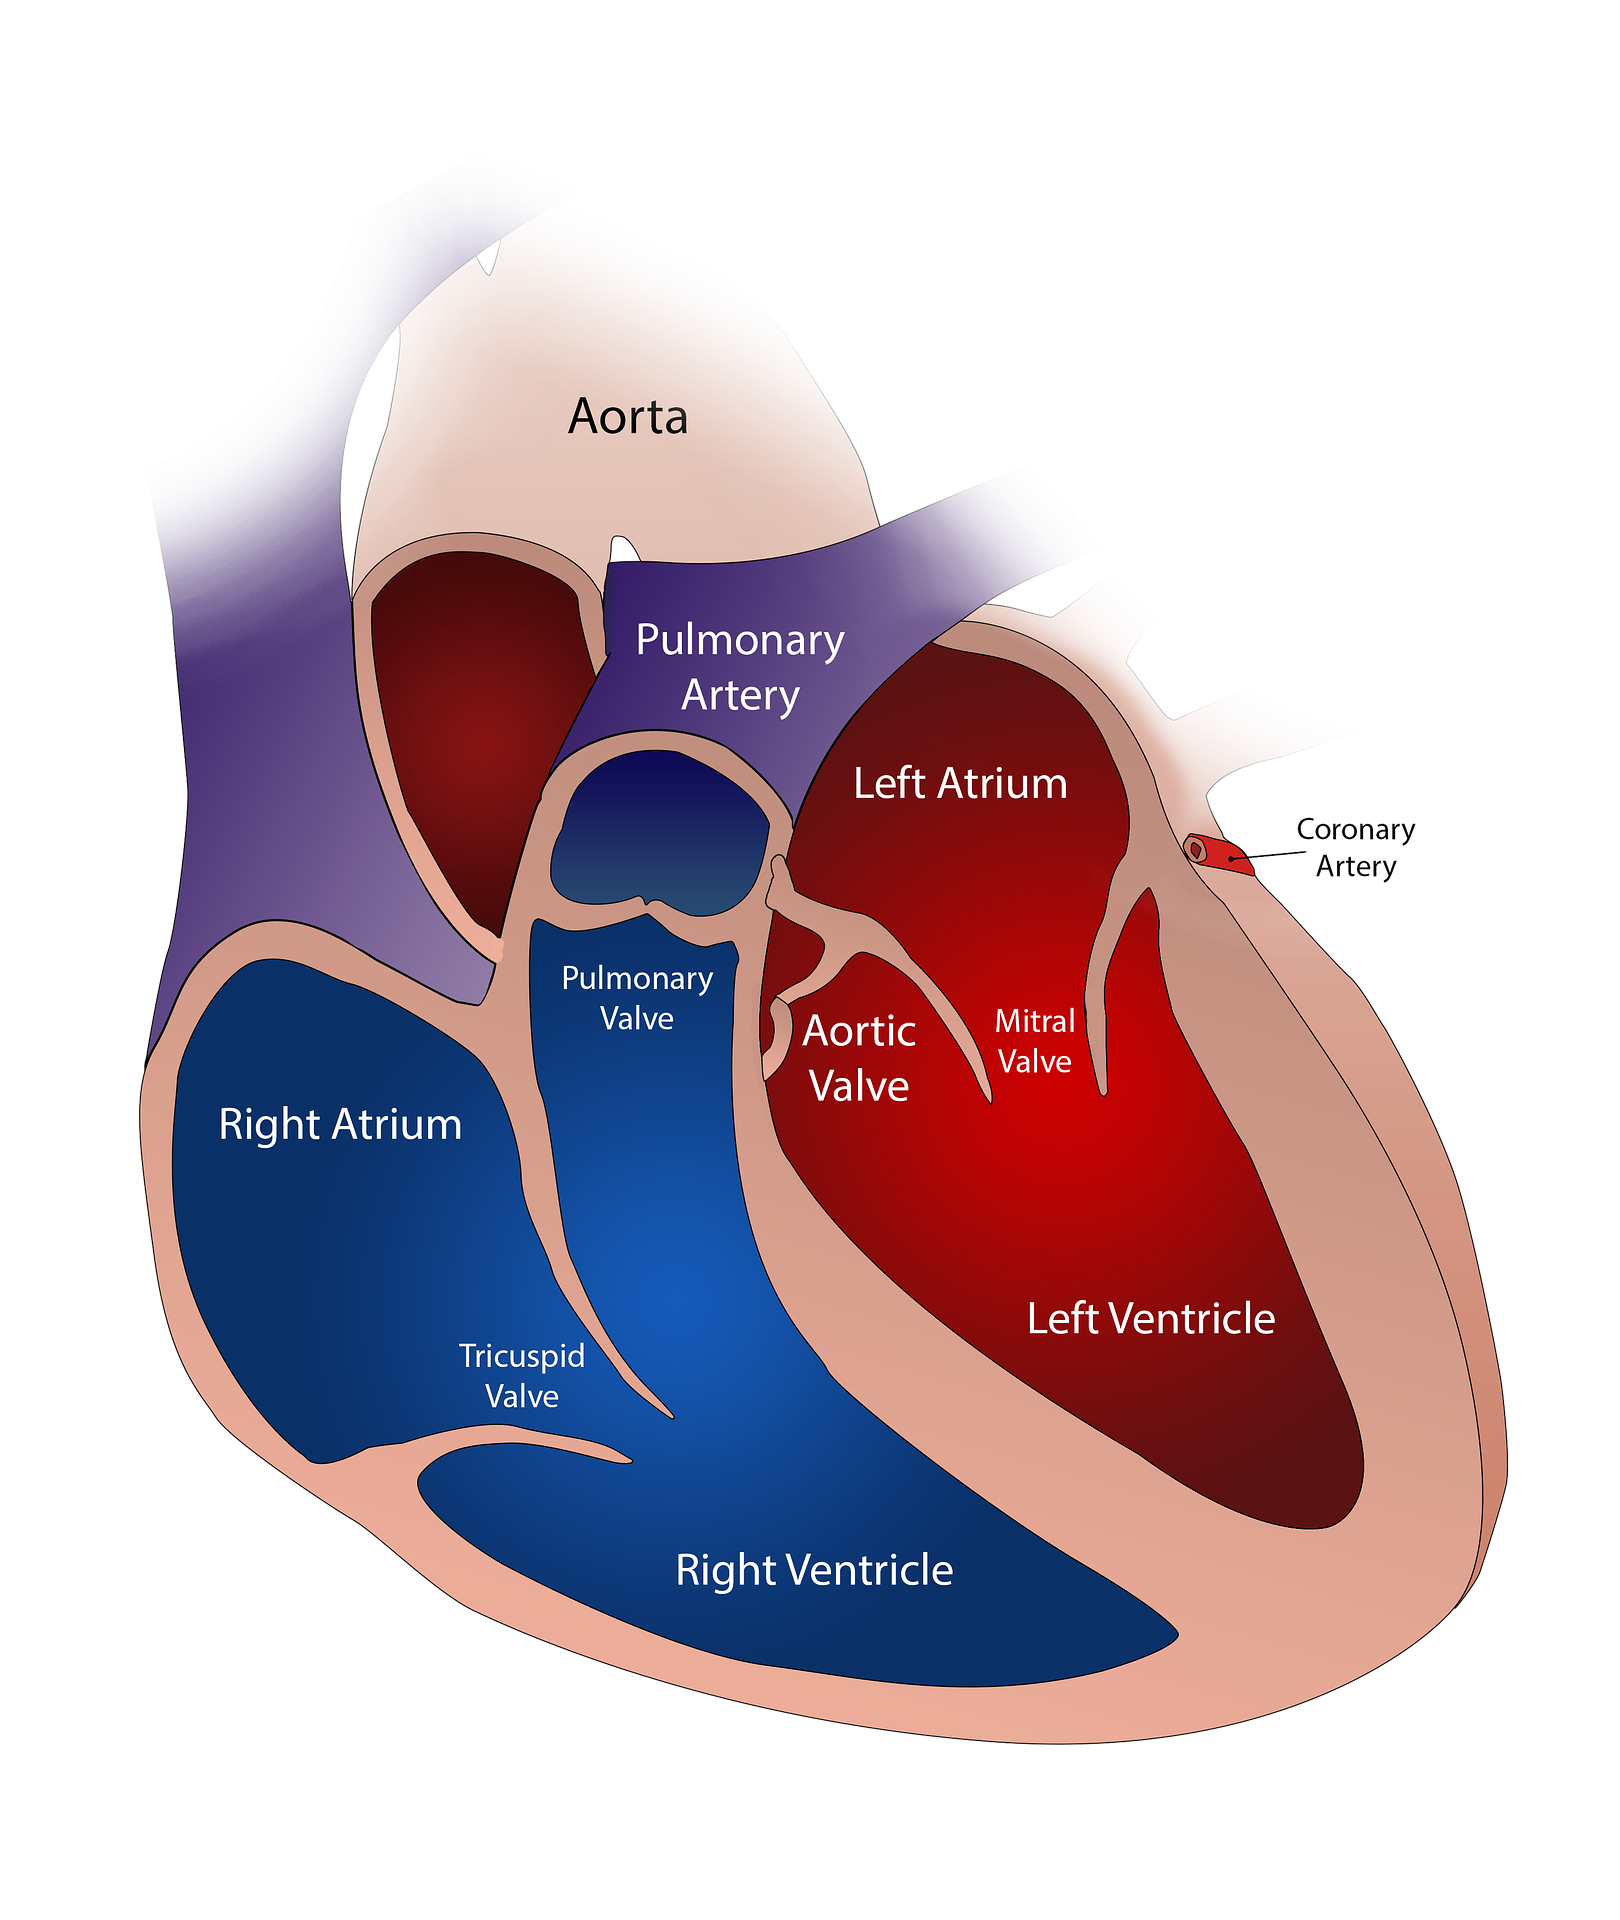 Drawing of human heart and the different anatomical parts.